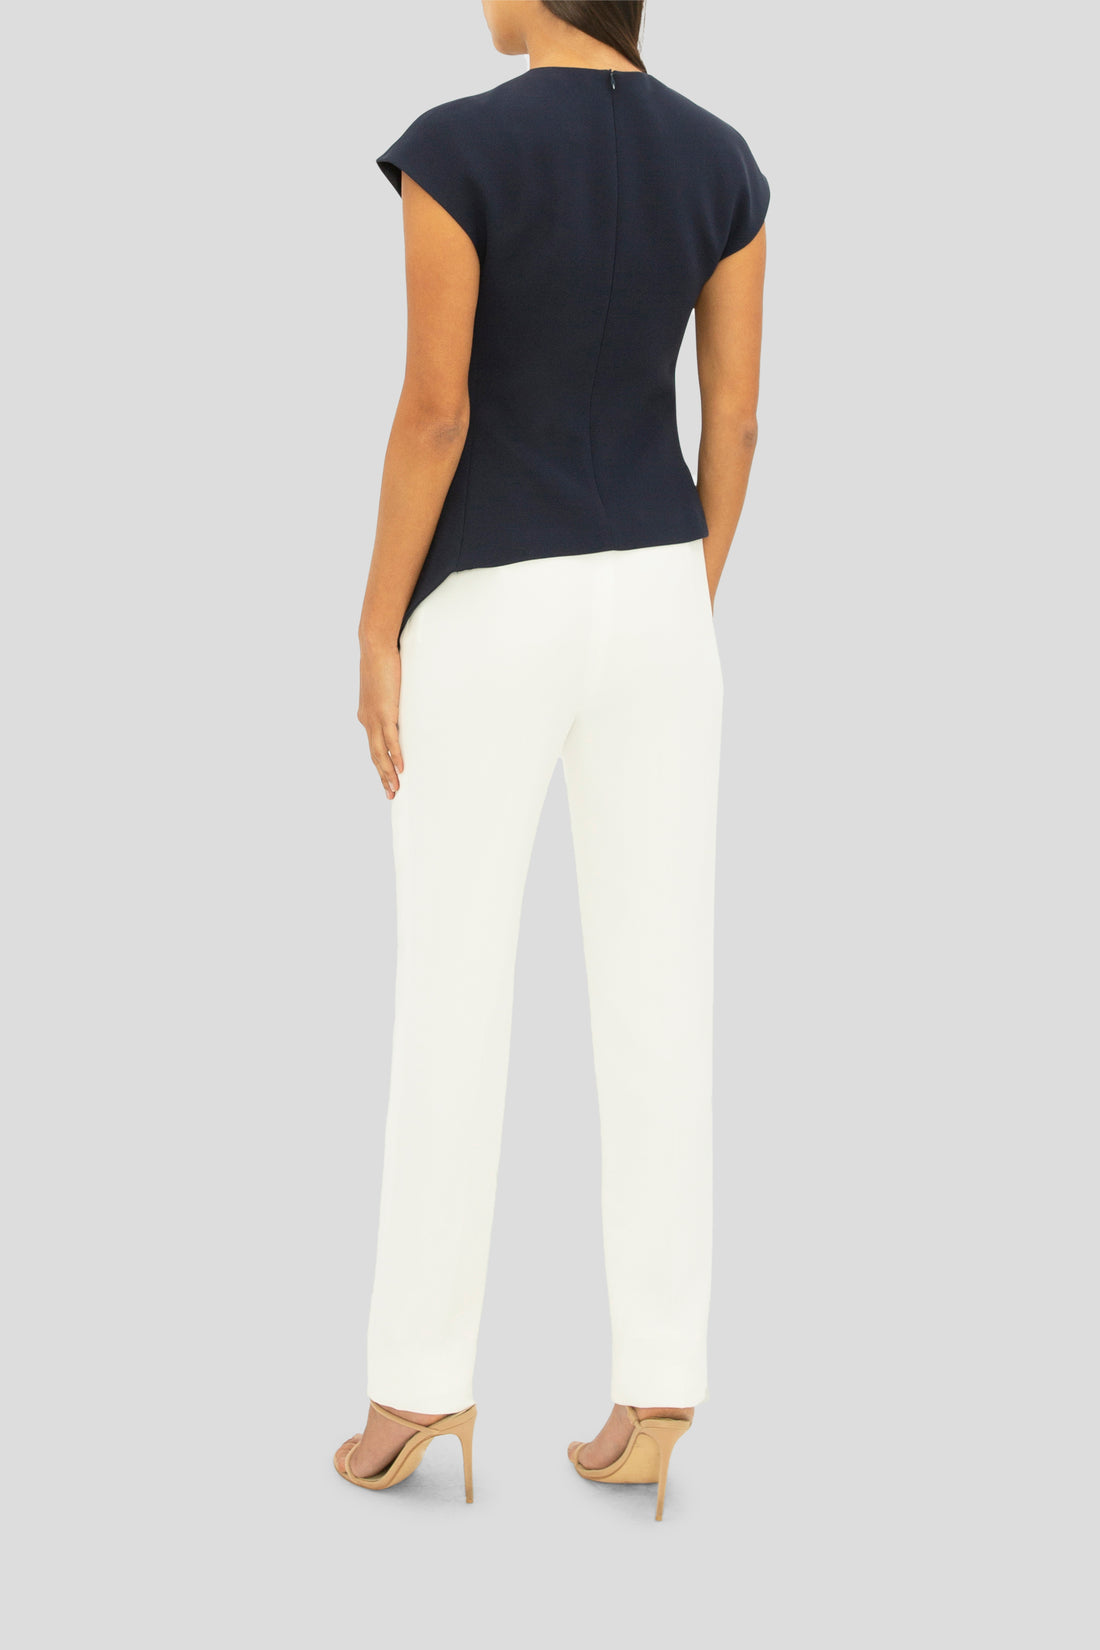 THE WHITE DESIRE SLIM PANT